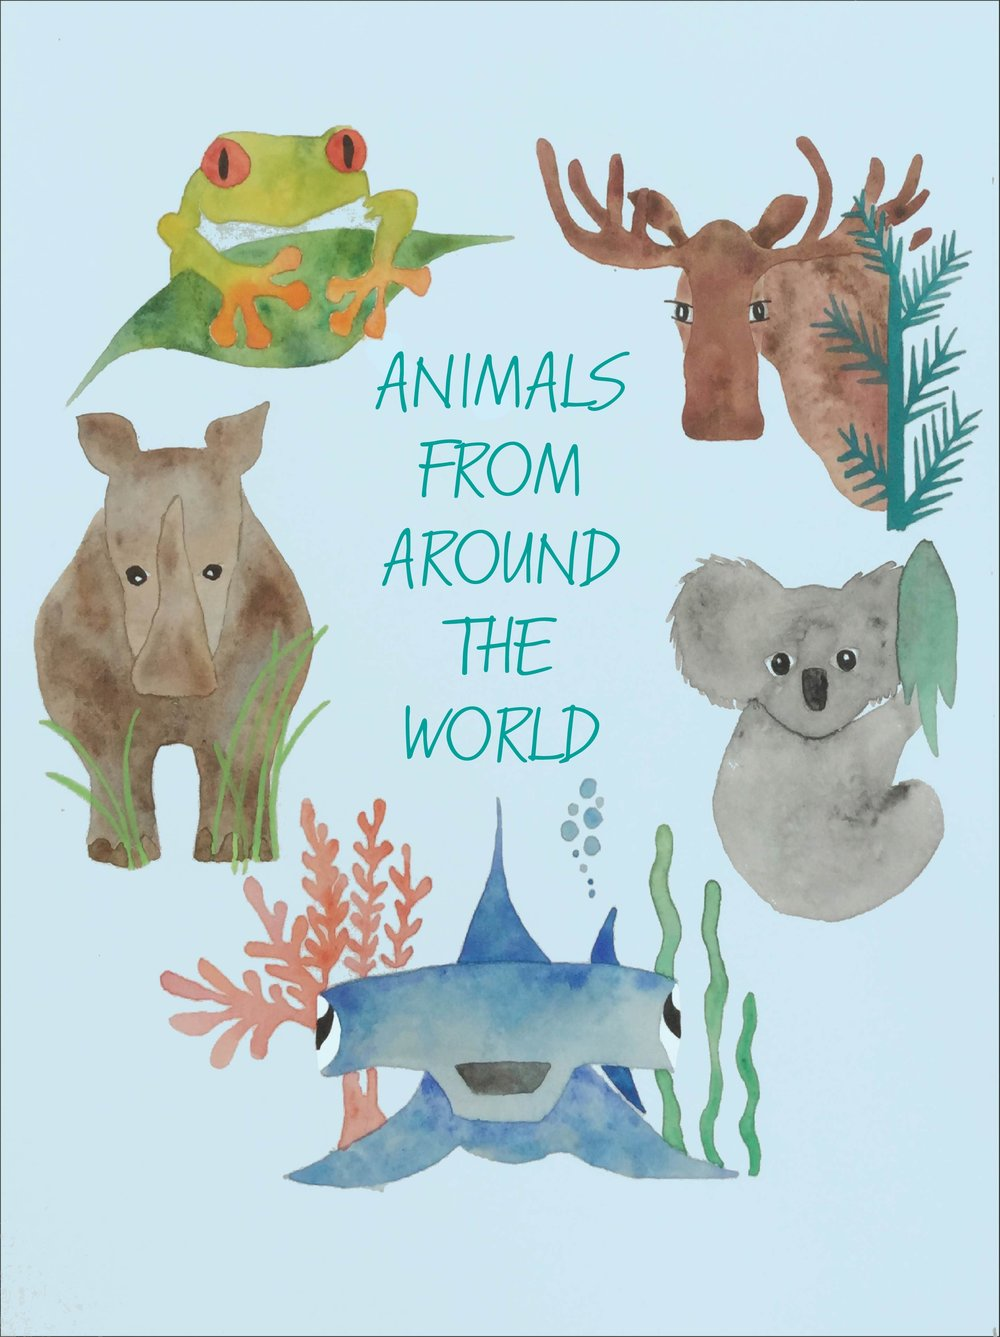 ANIMALS COVER 1-01.jpg